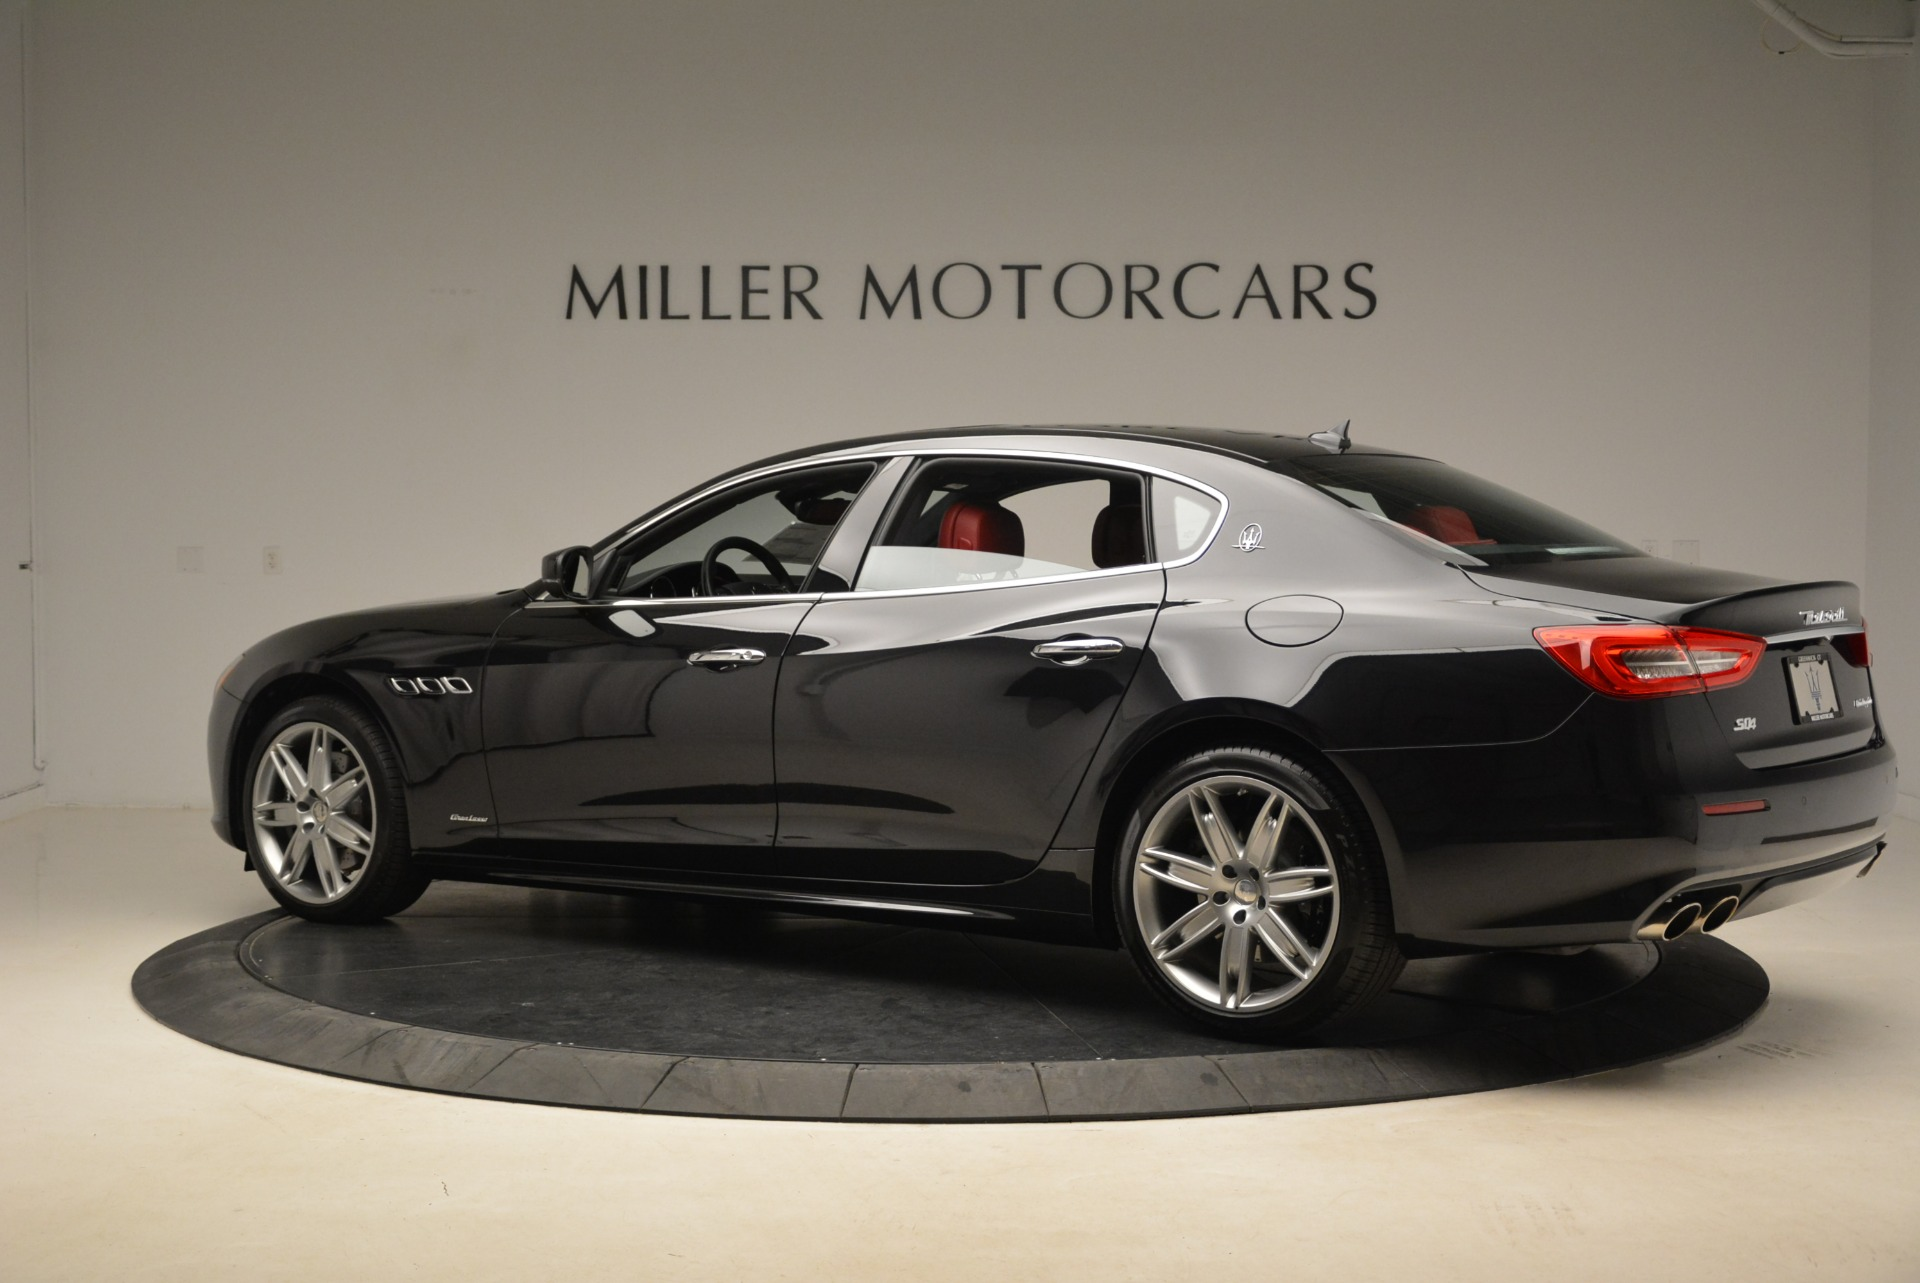 New 2018 Maserati Quattroporte S Q4 GranLusso For Sale In Greenwich, CT. Alfa Romeo of Greenwich, M2175 2390_p4